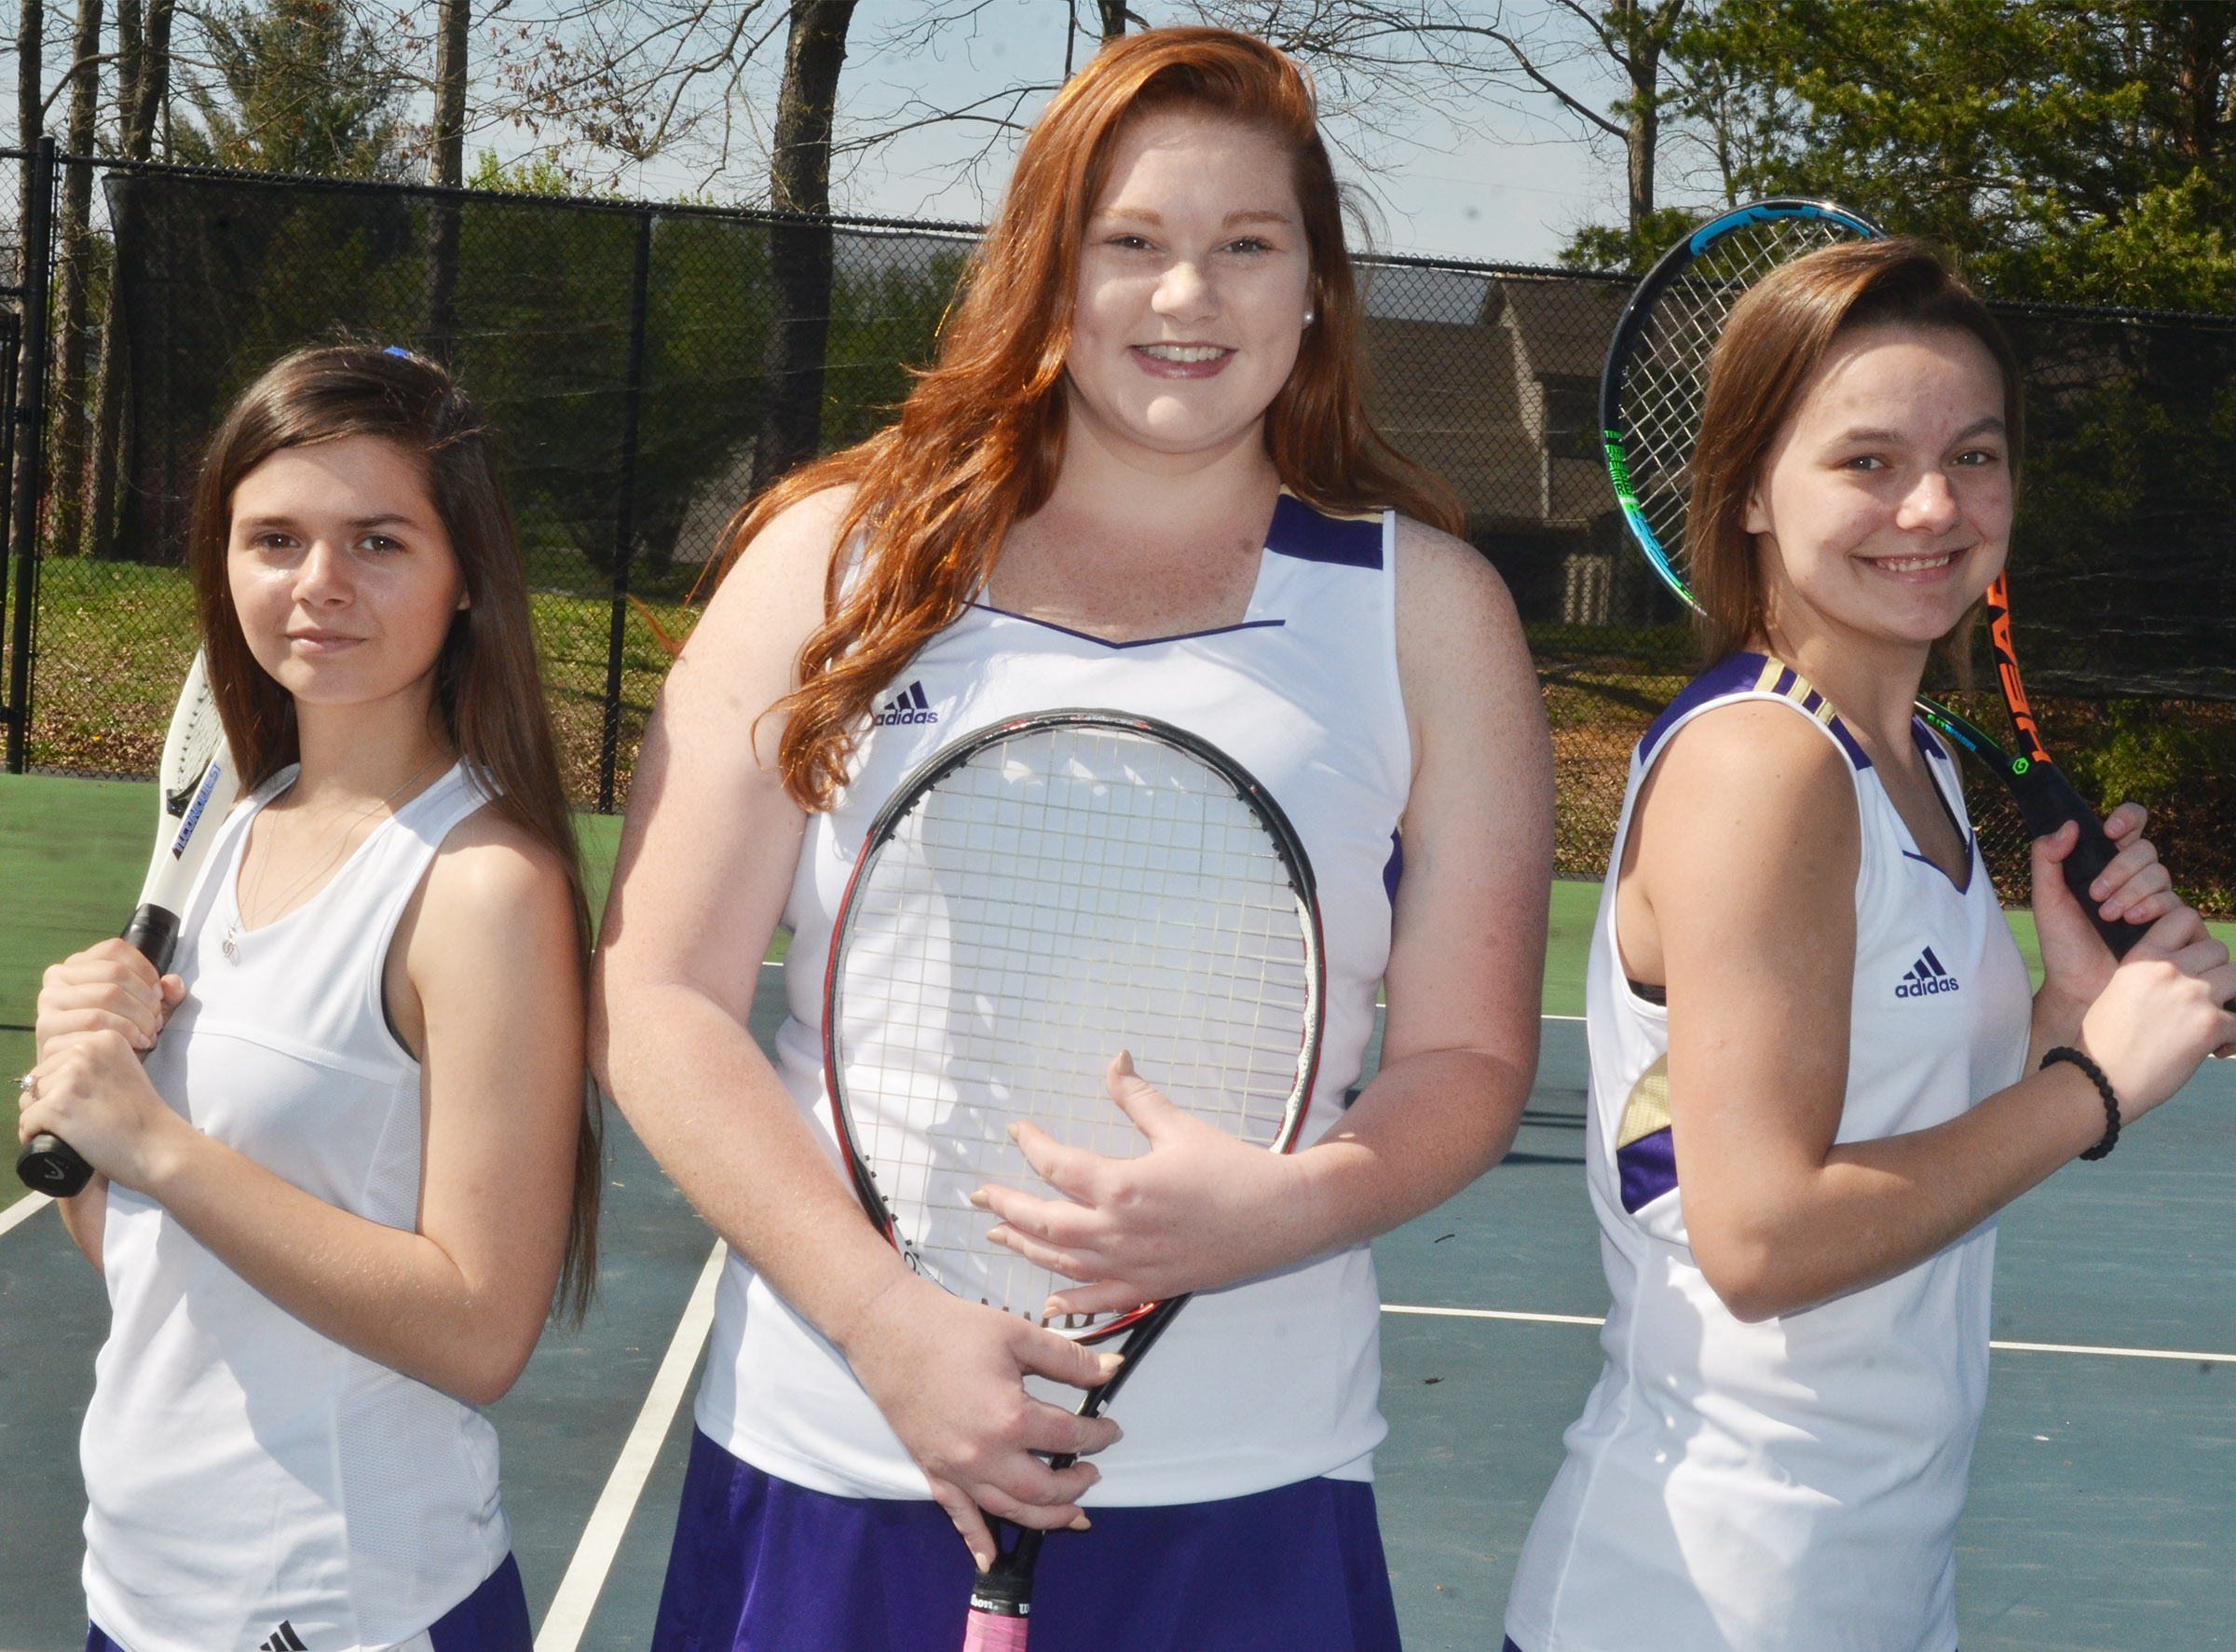 This year's CHS girls' tennis team features three seniors, from left, Shauna Jones, Mallory Haley and Kyrsten Hill.